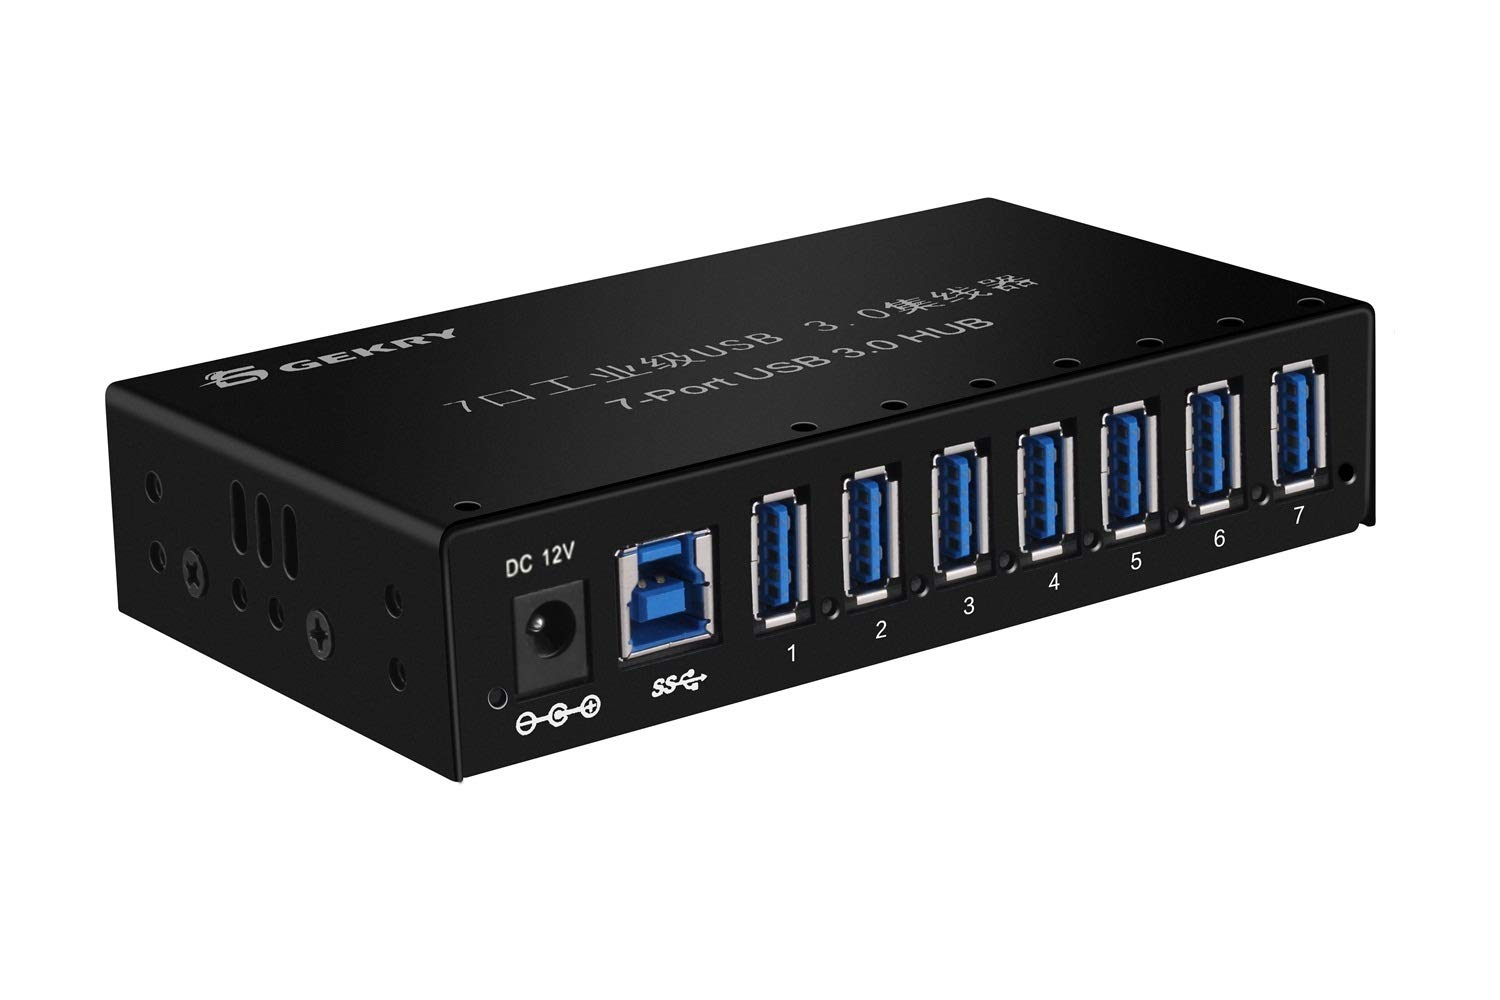 Amazon.com: GEKRY USB 3.0 Hub, Metal Case Mountable 7-Port ...